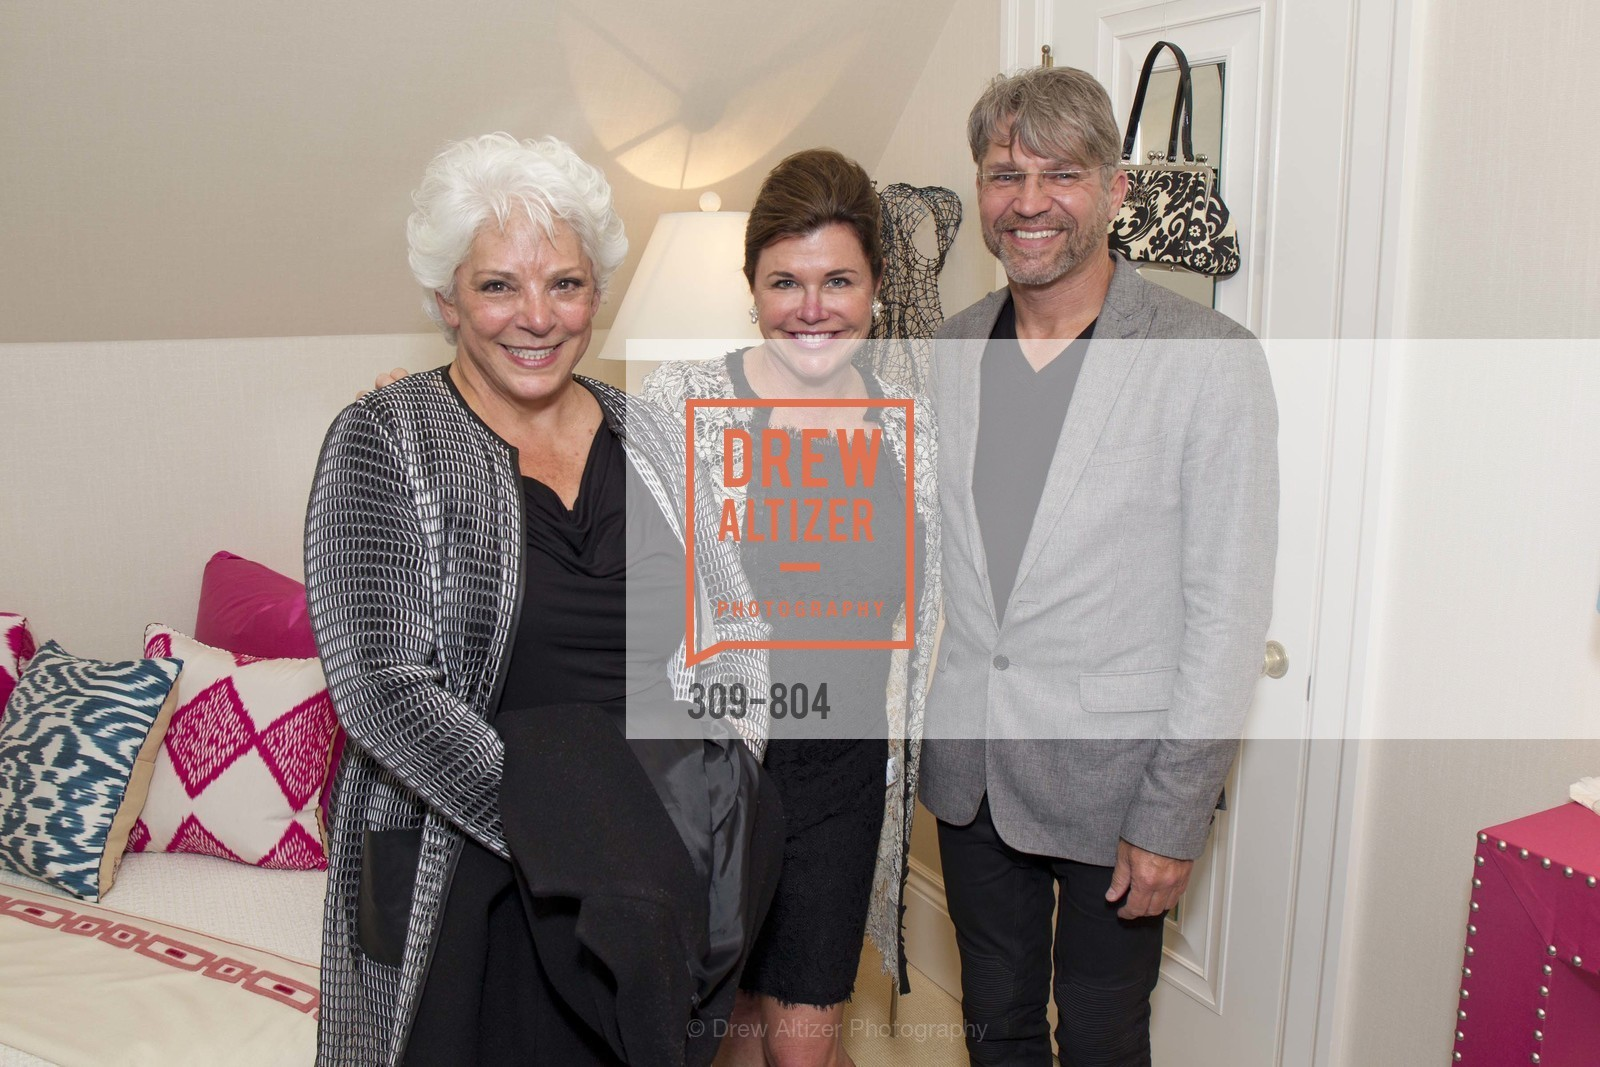 Marian Wheeler, Amy Weaver, James Hunter, San Francisco Decorator Showcase Opening Night Party, US, April 25th, 2015,Drew Altizer, Drew Altizer Photography, full-service agency, private events, San Francisco photographer, photographer california